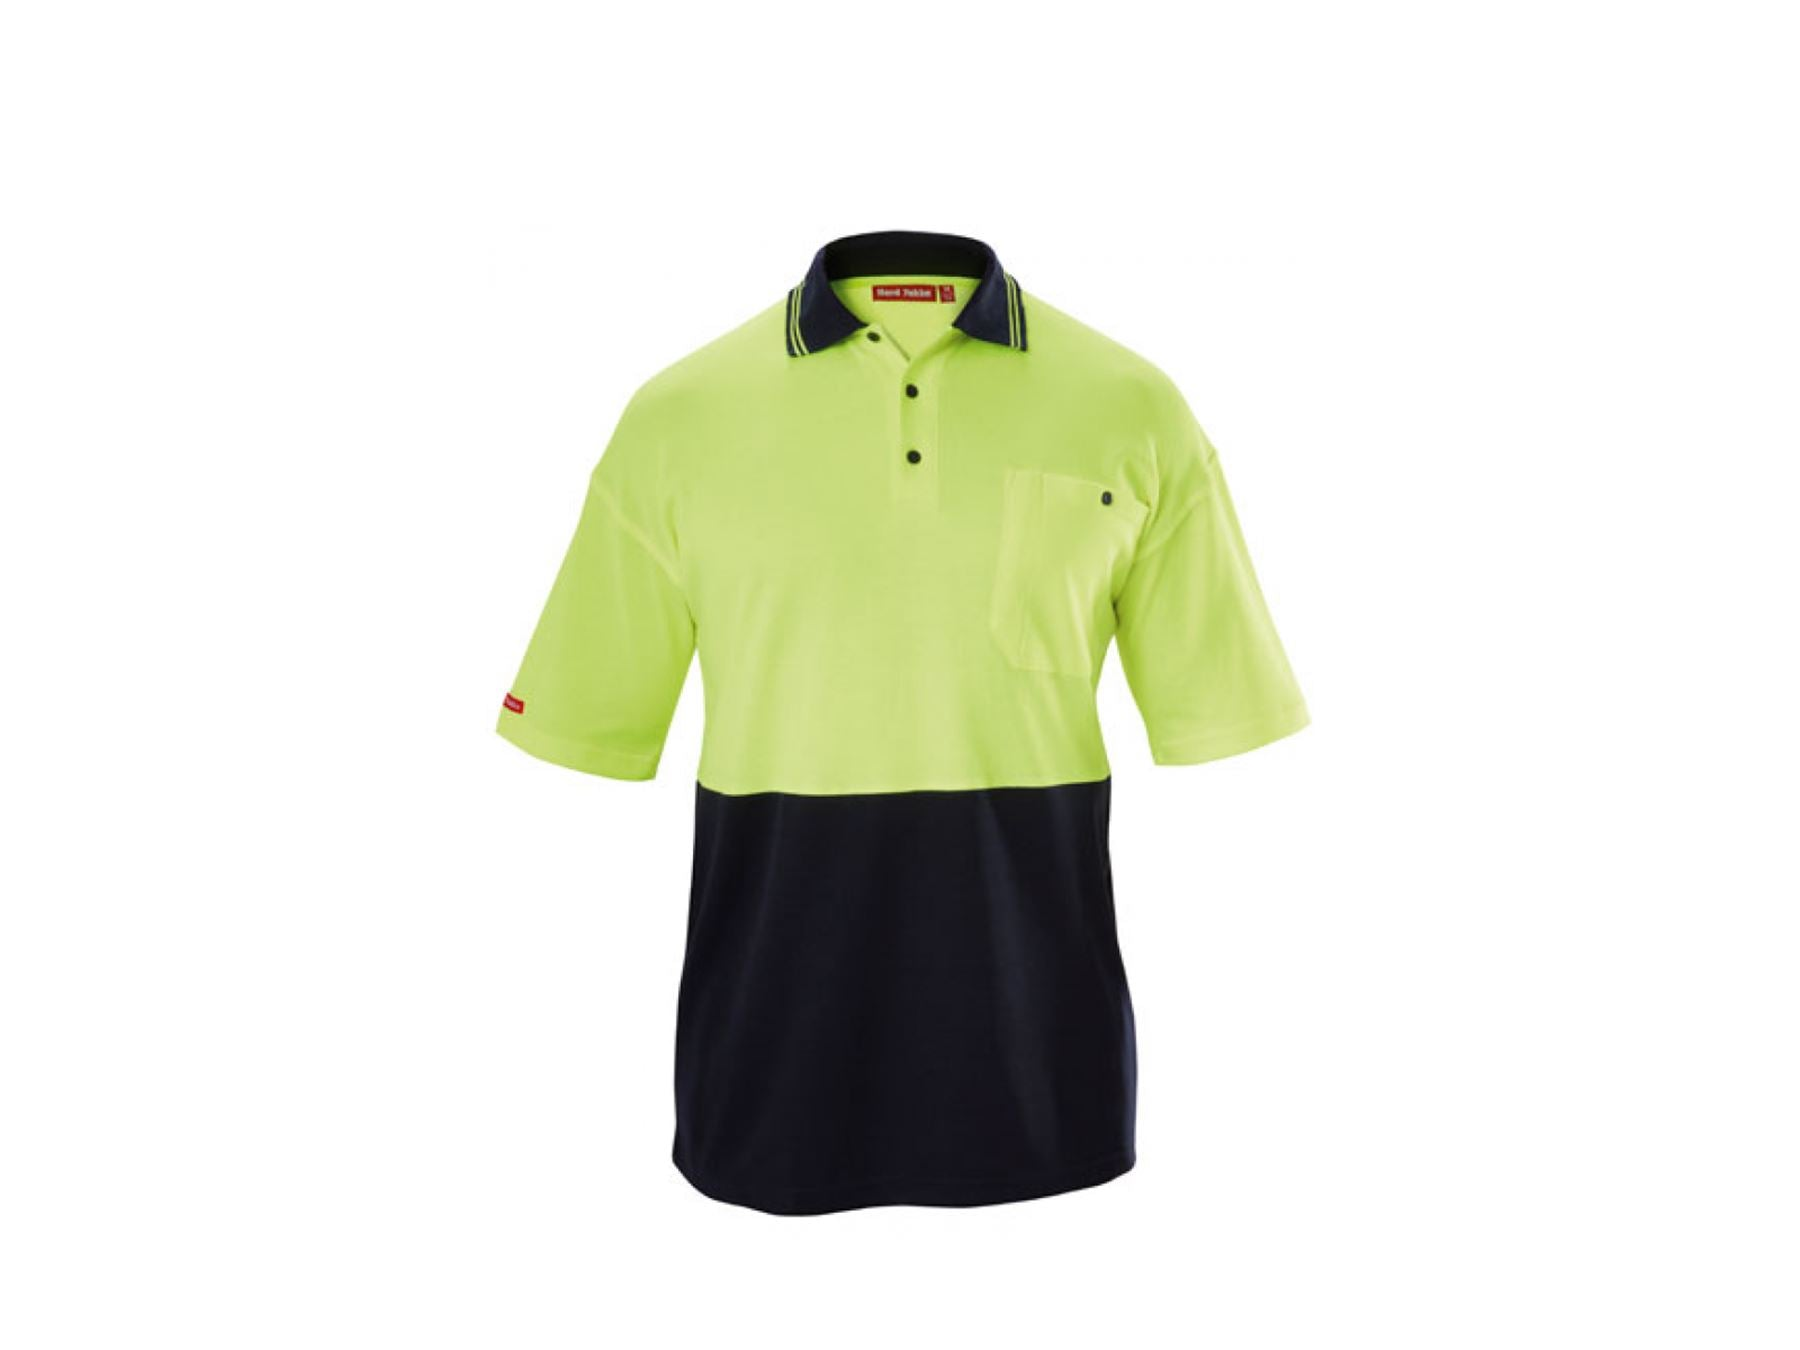 Hard Yakka Hi Vis Short Sleeve Shirt - Fluro Yellow/Navy Workwear Hard Yakka